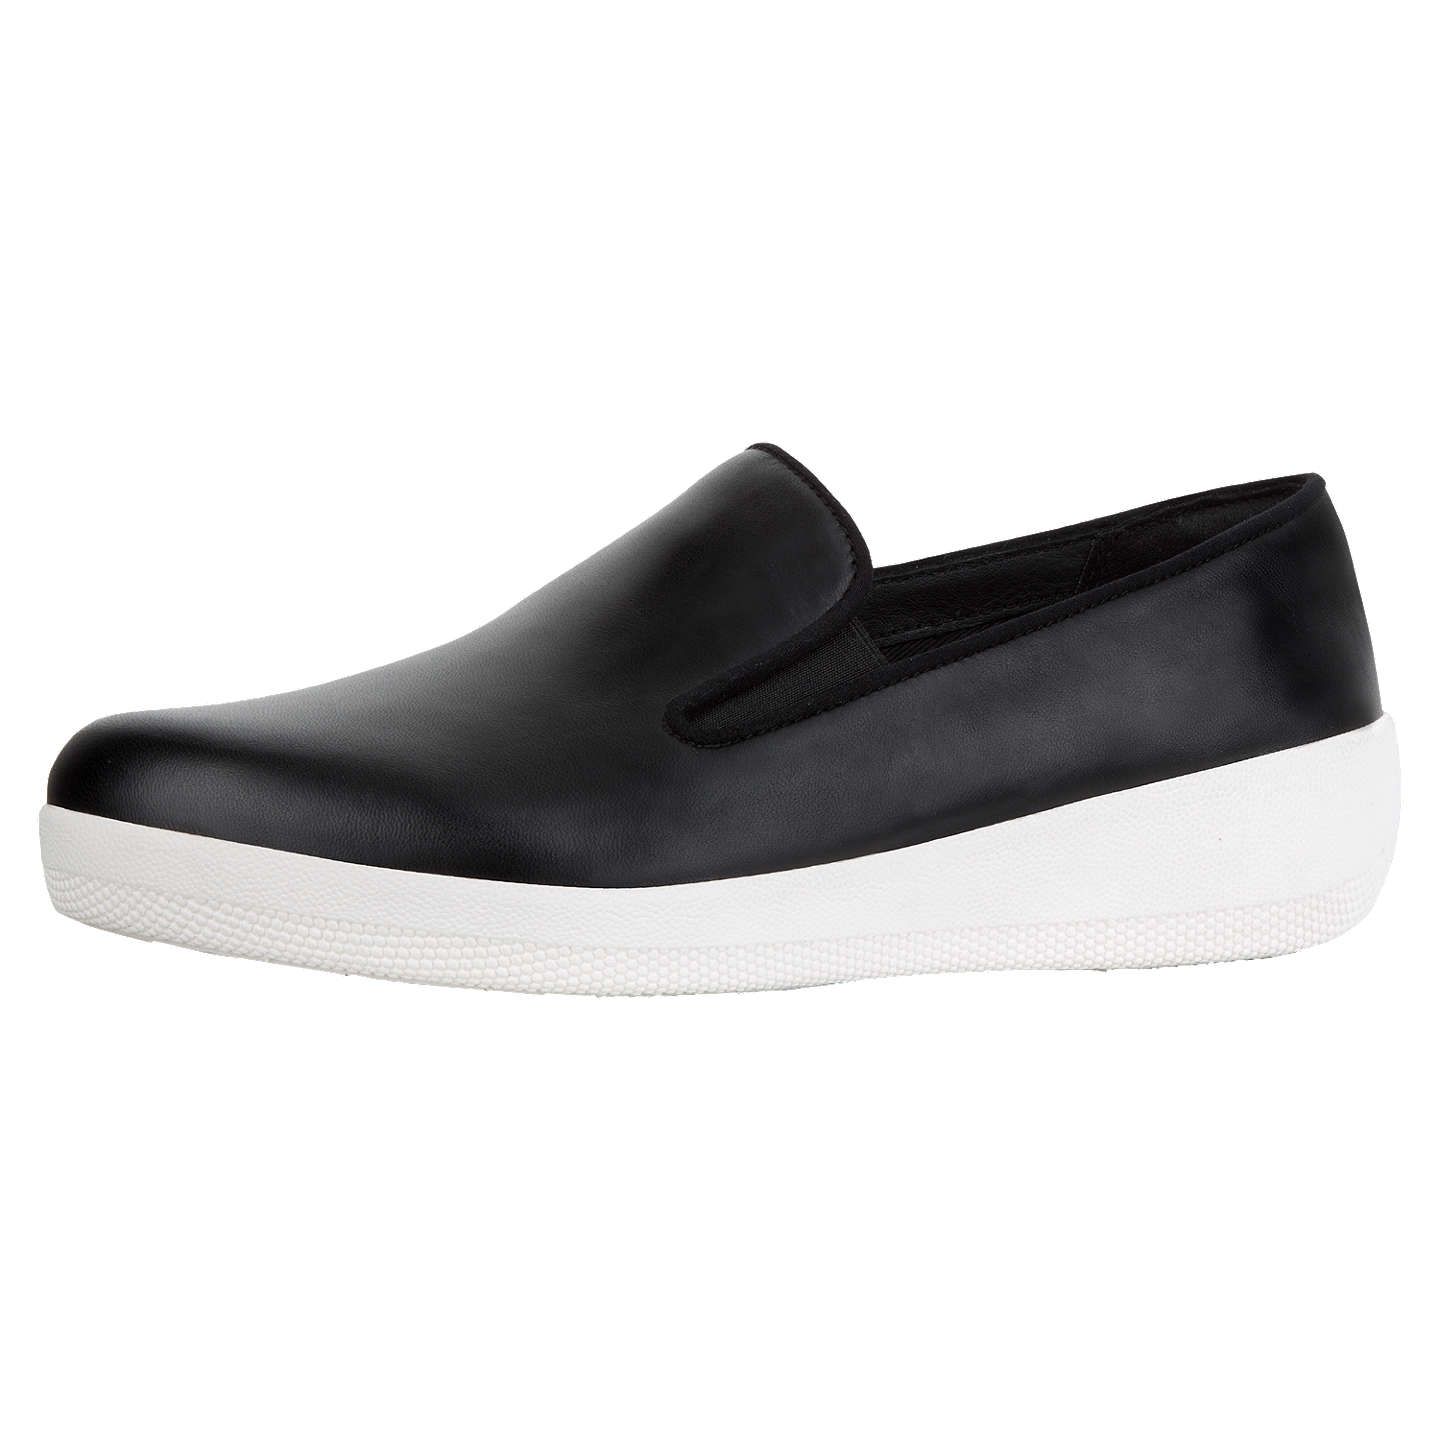 BuyFitFlop Superskate Wedge Heel Loafers, Black, 4 Online at johnlewis.com